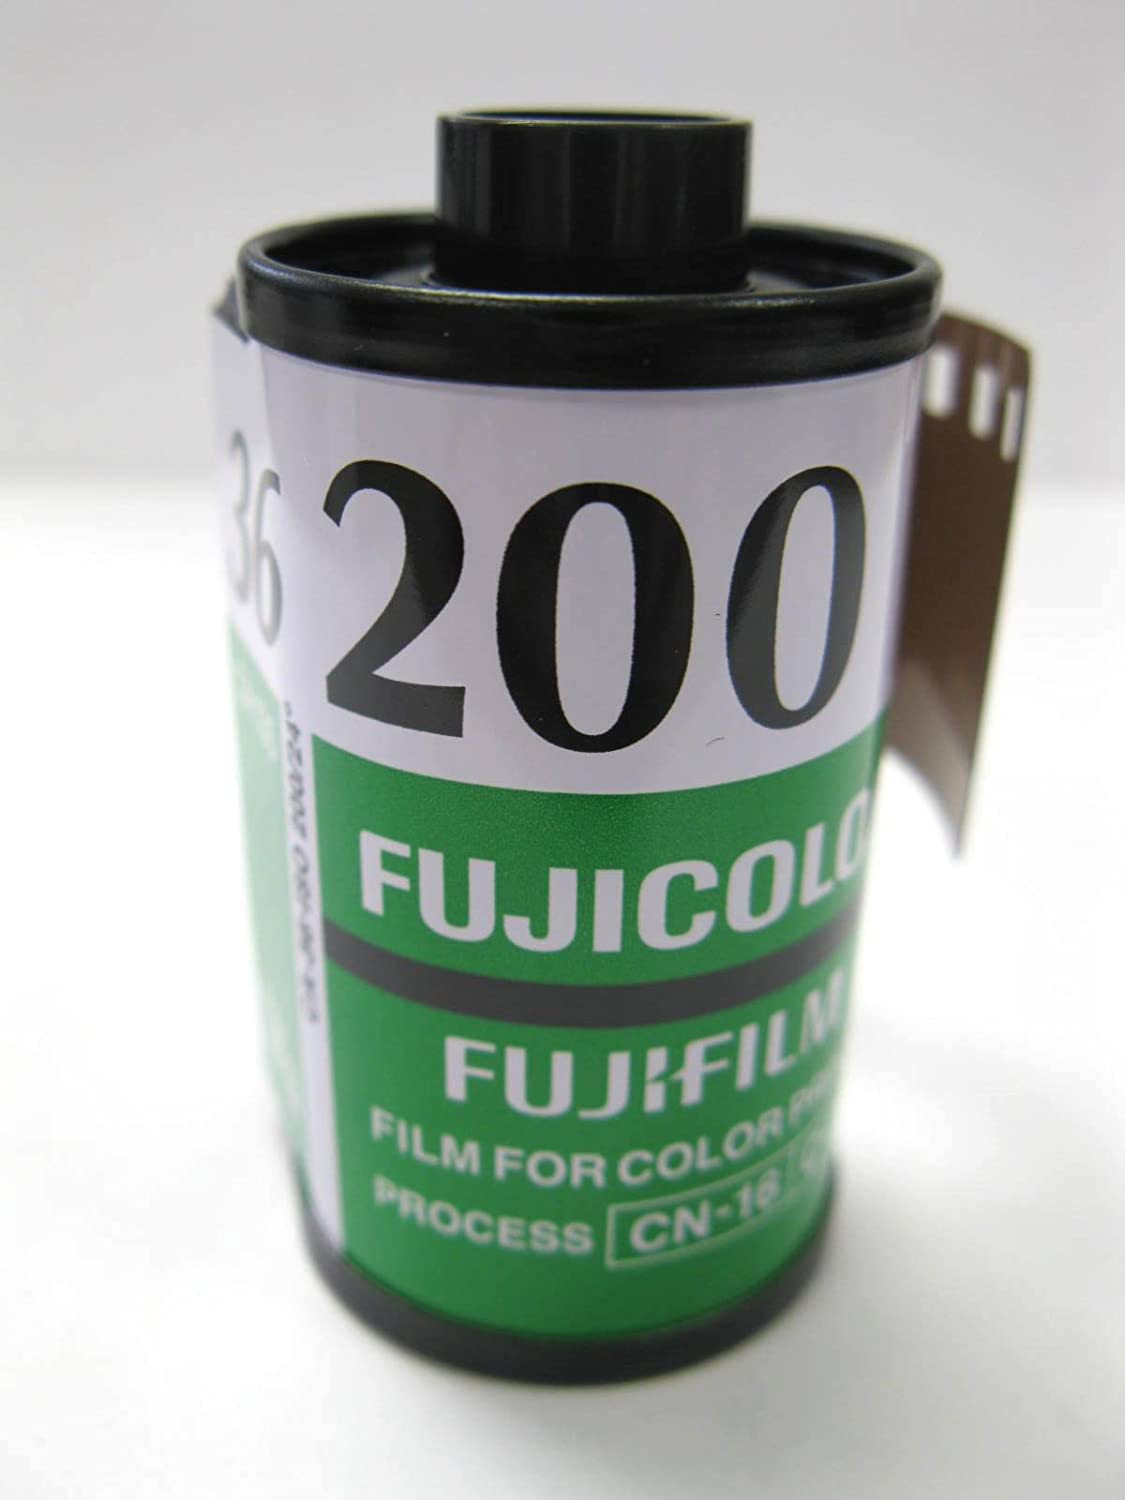 Fujifilm Fujicolor C200-36exp 35mm Color Negative Film